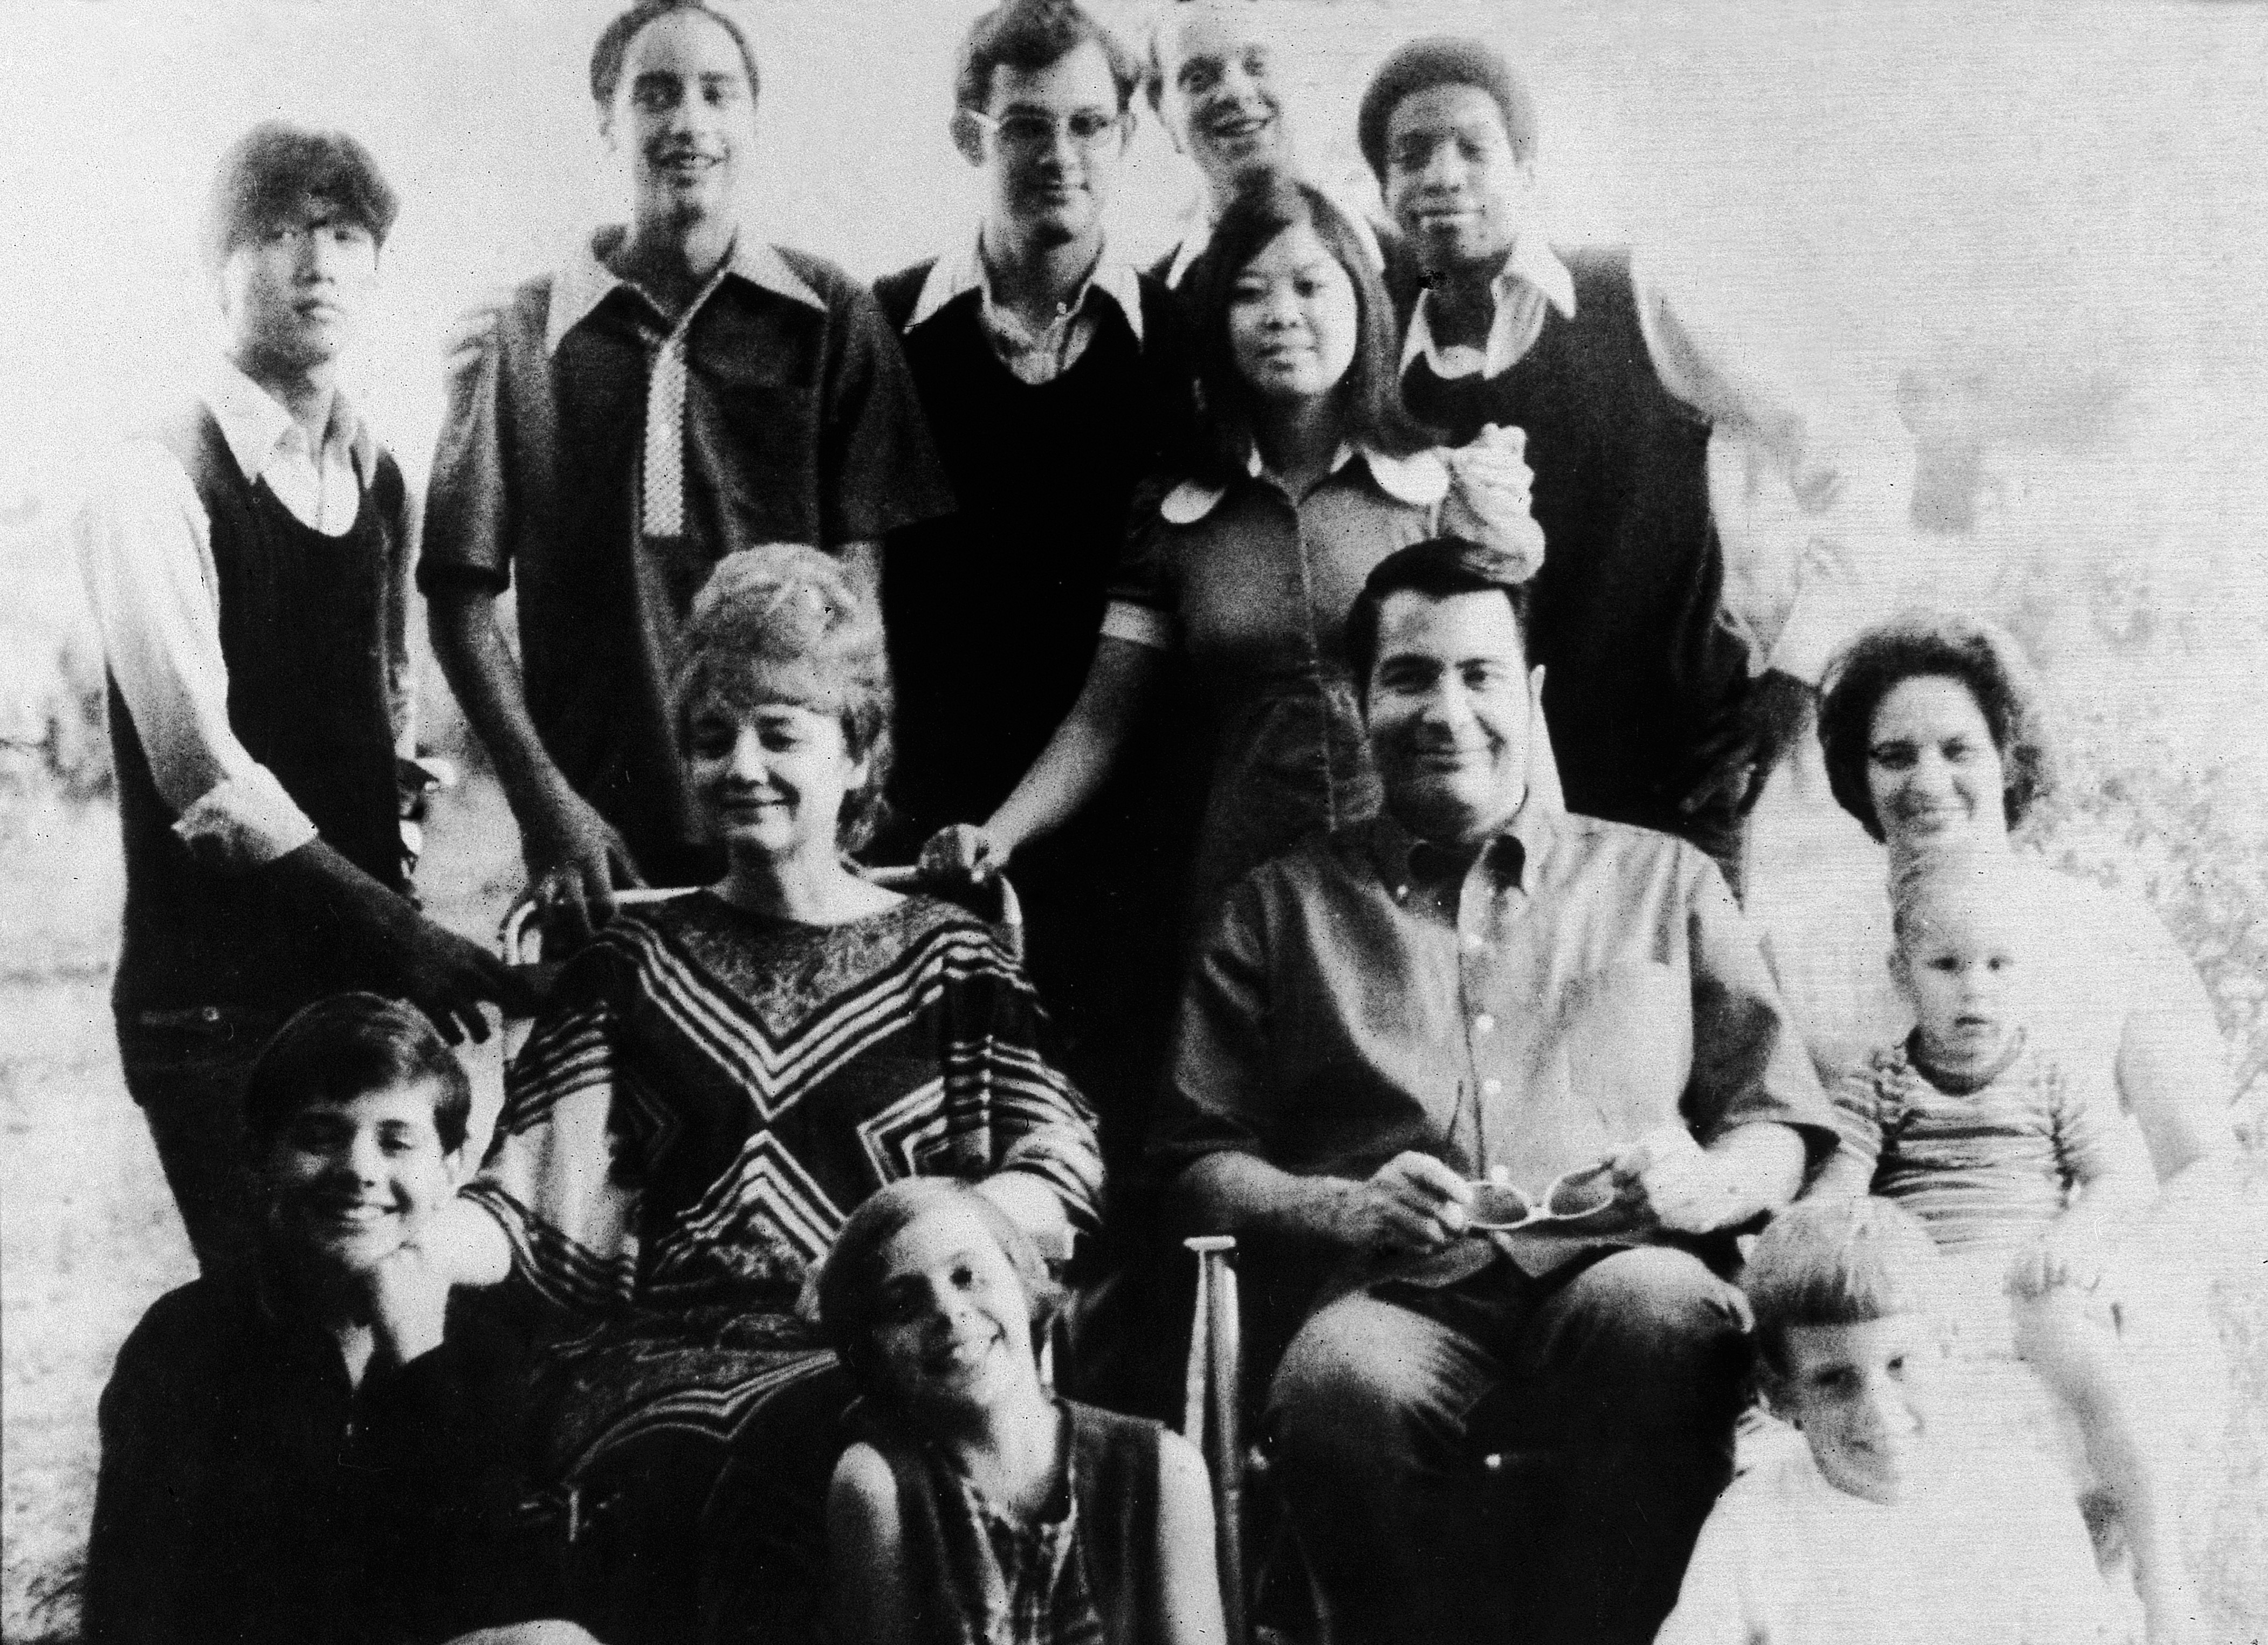 Jonestown: 10 Things You Didn't Know About Cult Massacre